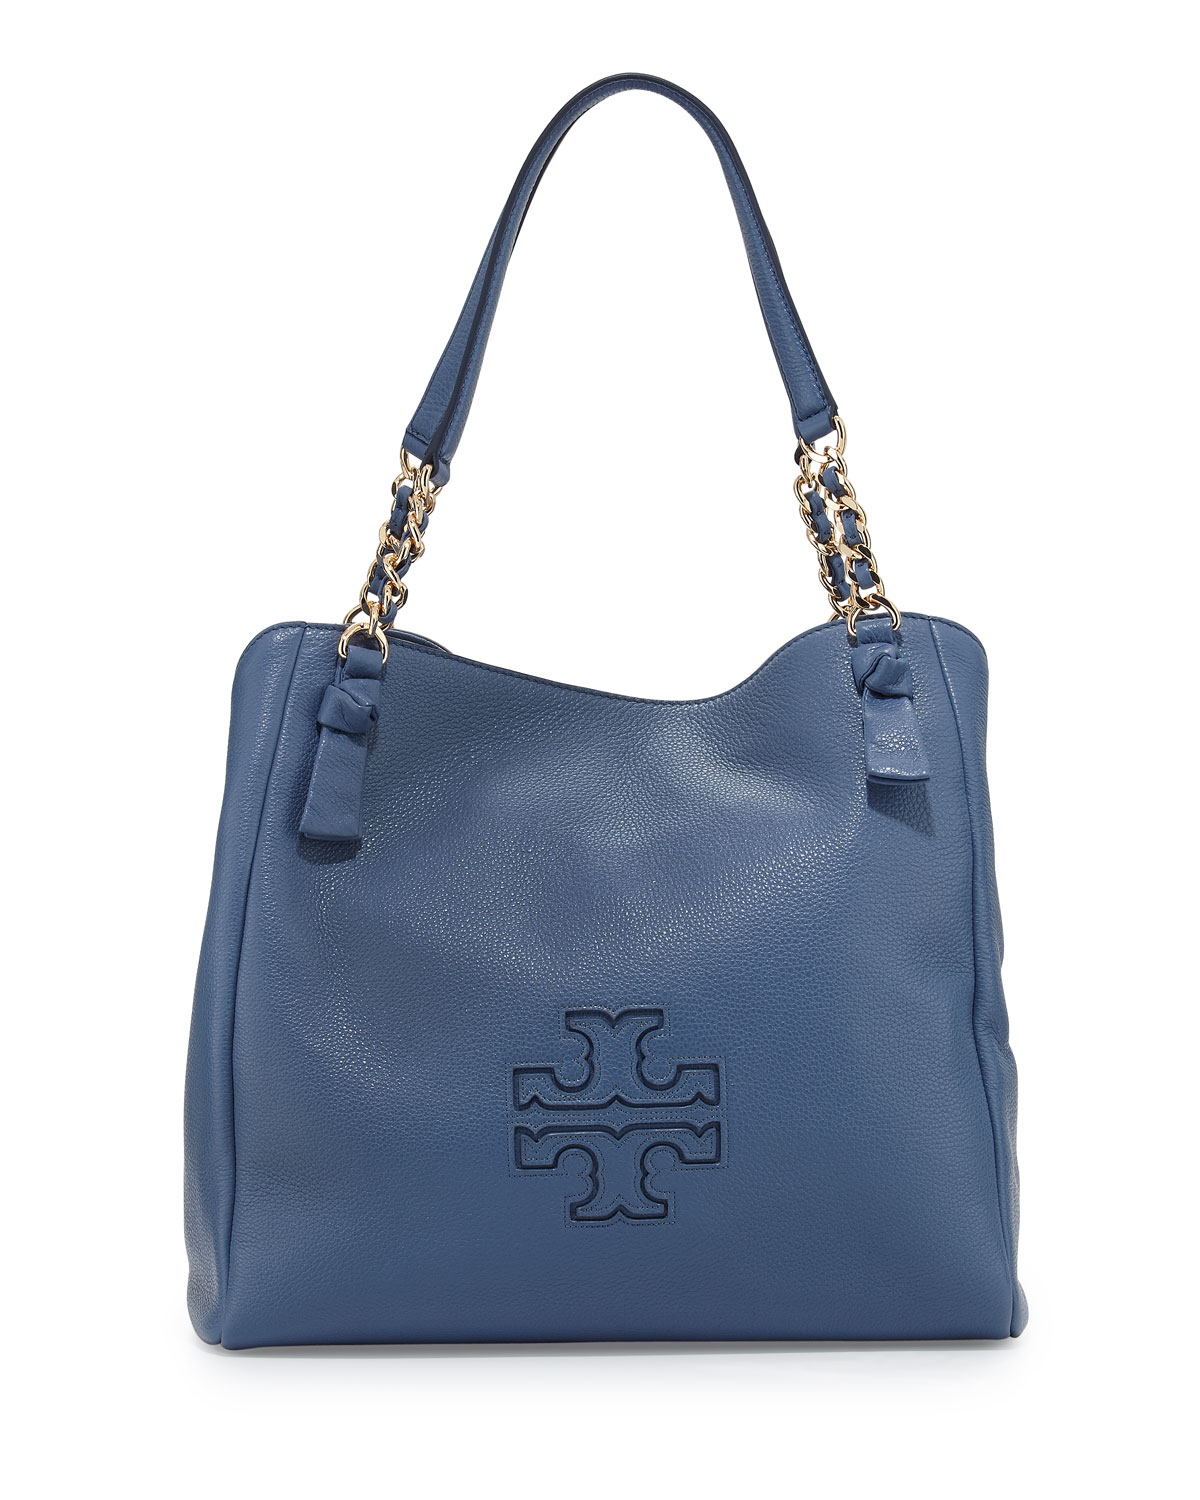 9fcc5859c099 Tory Burch Harper Center-Zip Leather Tote Bag